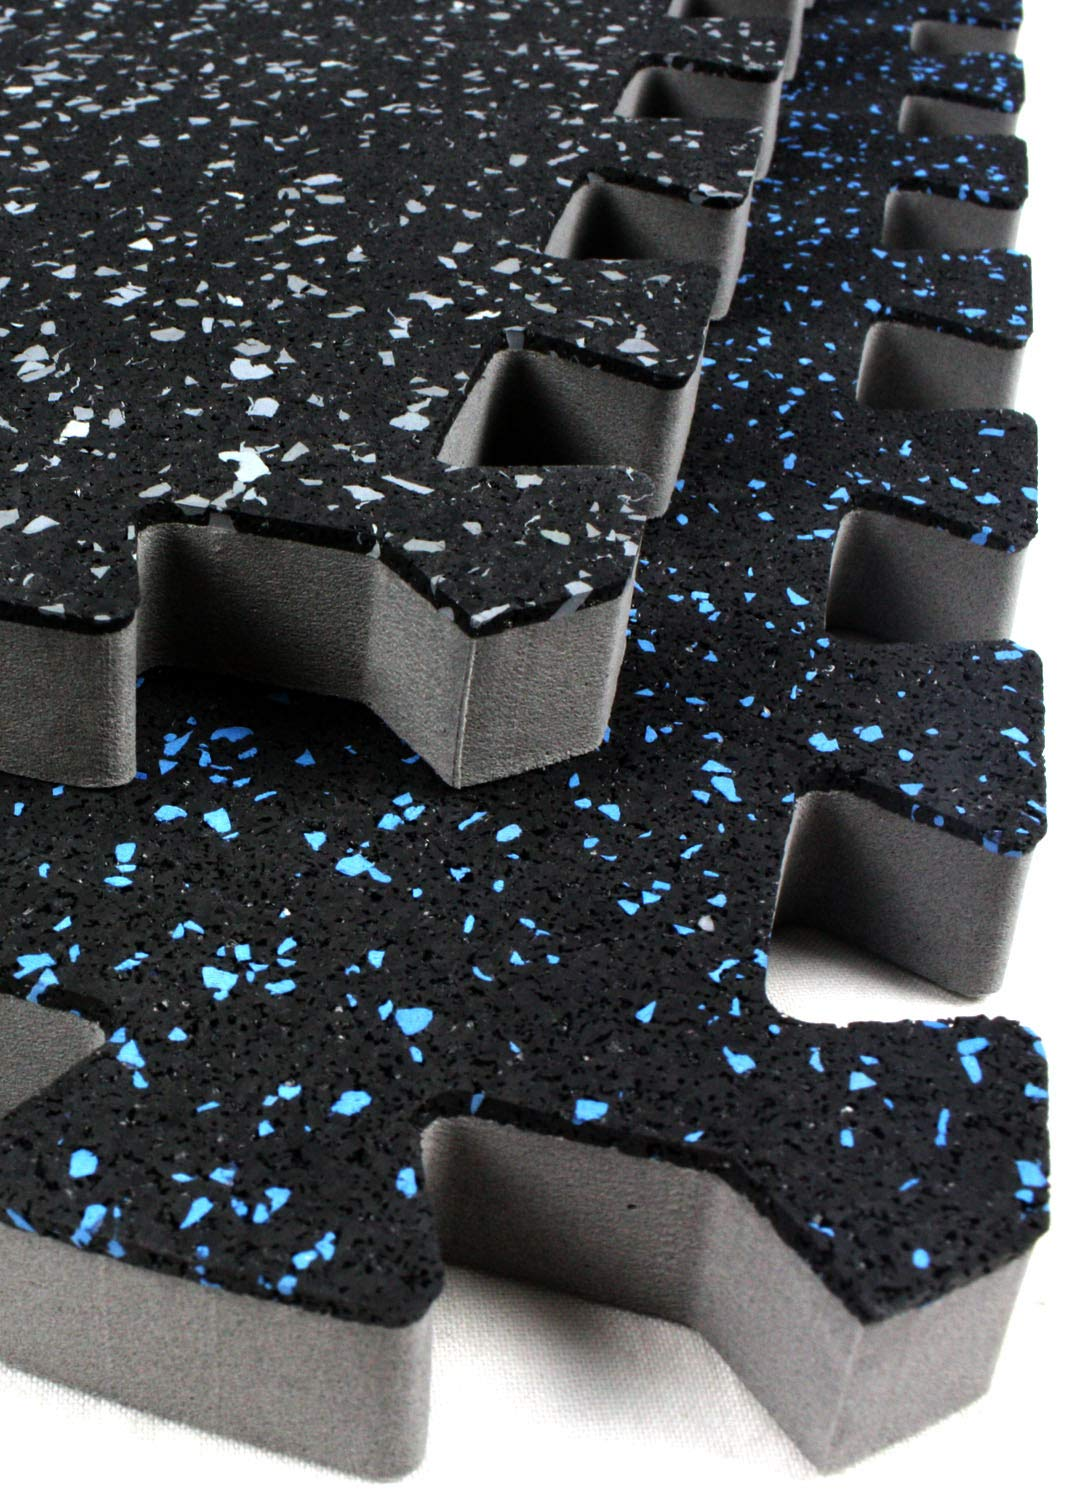 IncStores 3/4'' Soft Rubber Interlocking Gym Flooring Tiles - Perfect Mats for Home Gyms, Insanity, P90X, Cardio and More